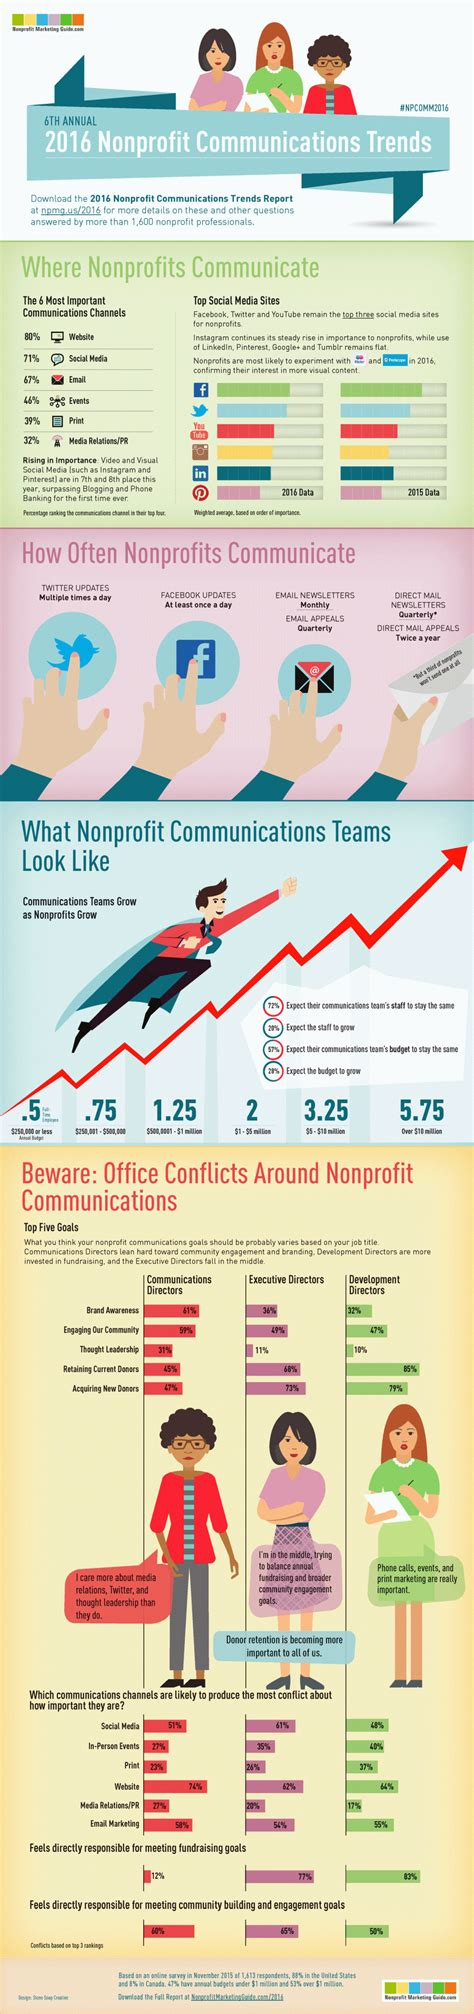 2016 social media marketing infographic 2016 nonprofit communications trends infographic